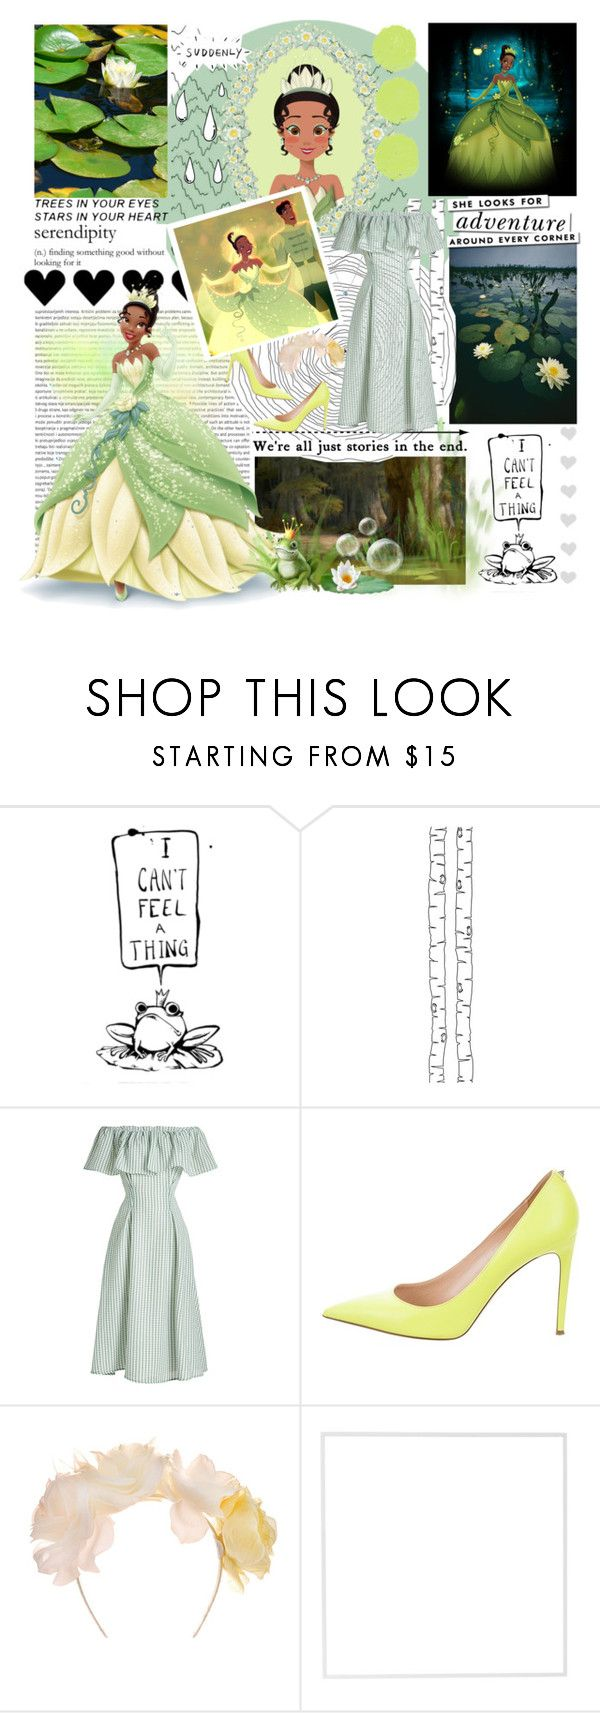 """The Princess And The Frog"" by dianasimonson ❤ liked on Polyvore featuring Disney, Kate Spade, Old Navy, ferm LIVING, Rejina Pyo, Valentino, Johnny Loves Rosie, Menu and David Yurman"